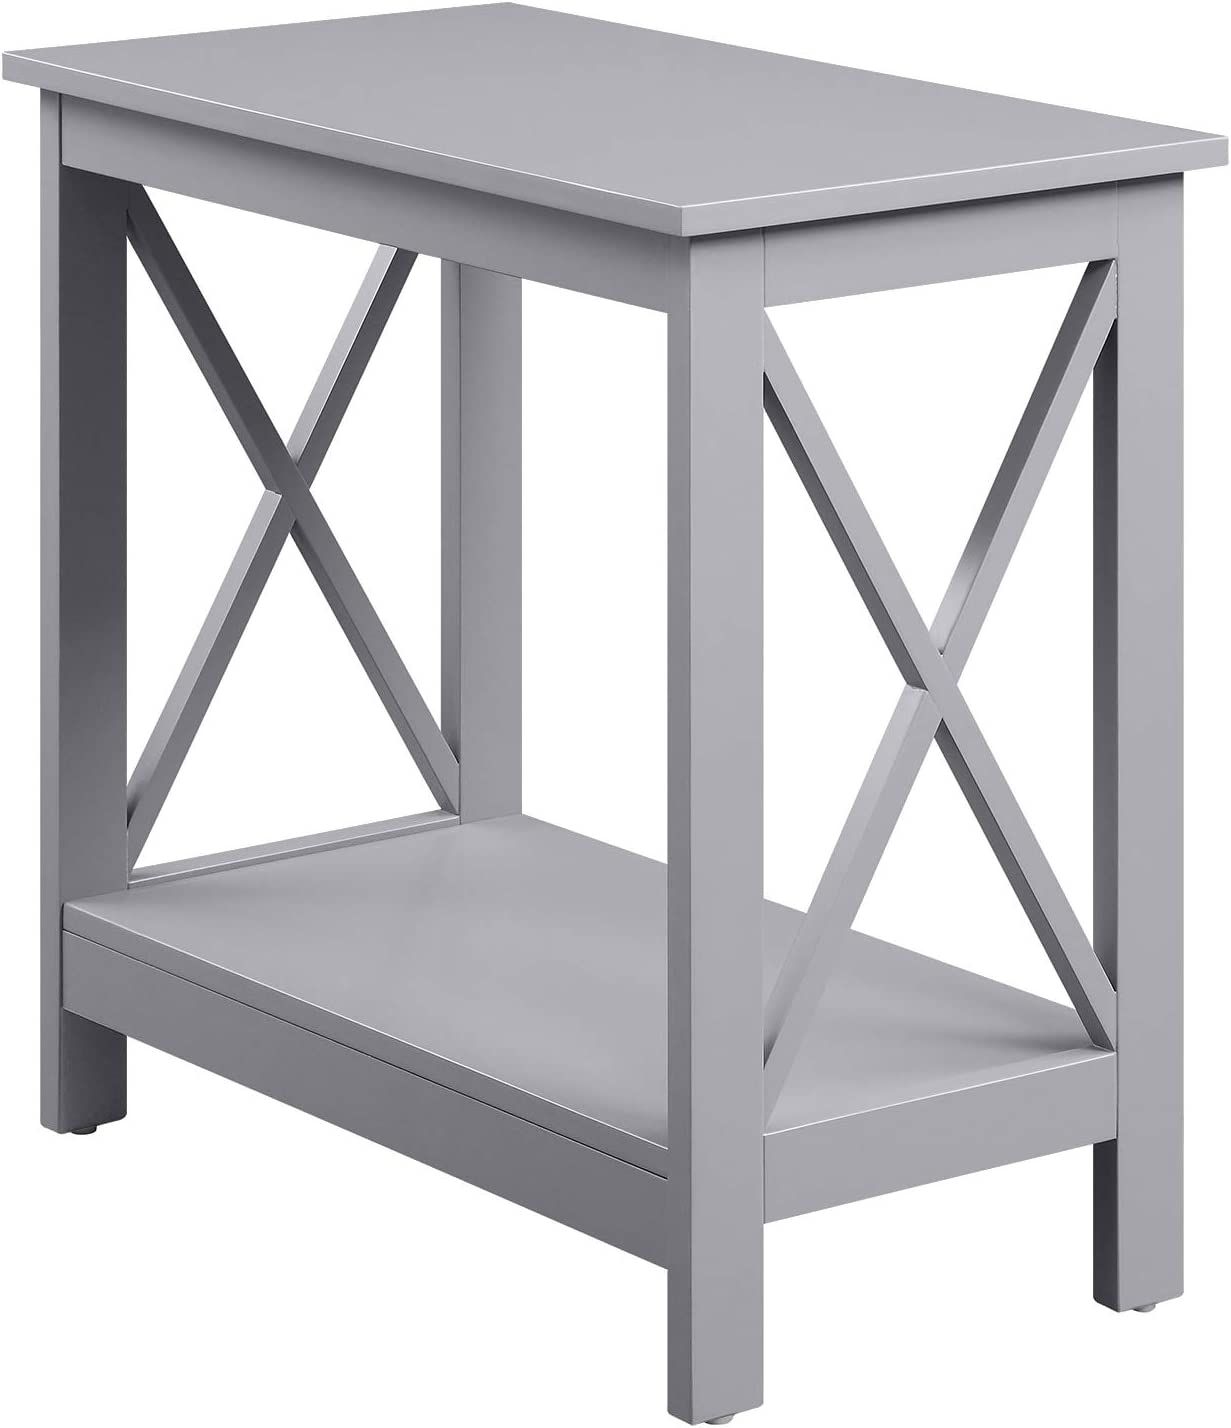 Convenience Concepts Oxford Free shipping on posting reviews Chairside End Gray Shelf Recommended with Table